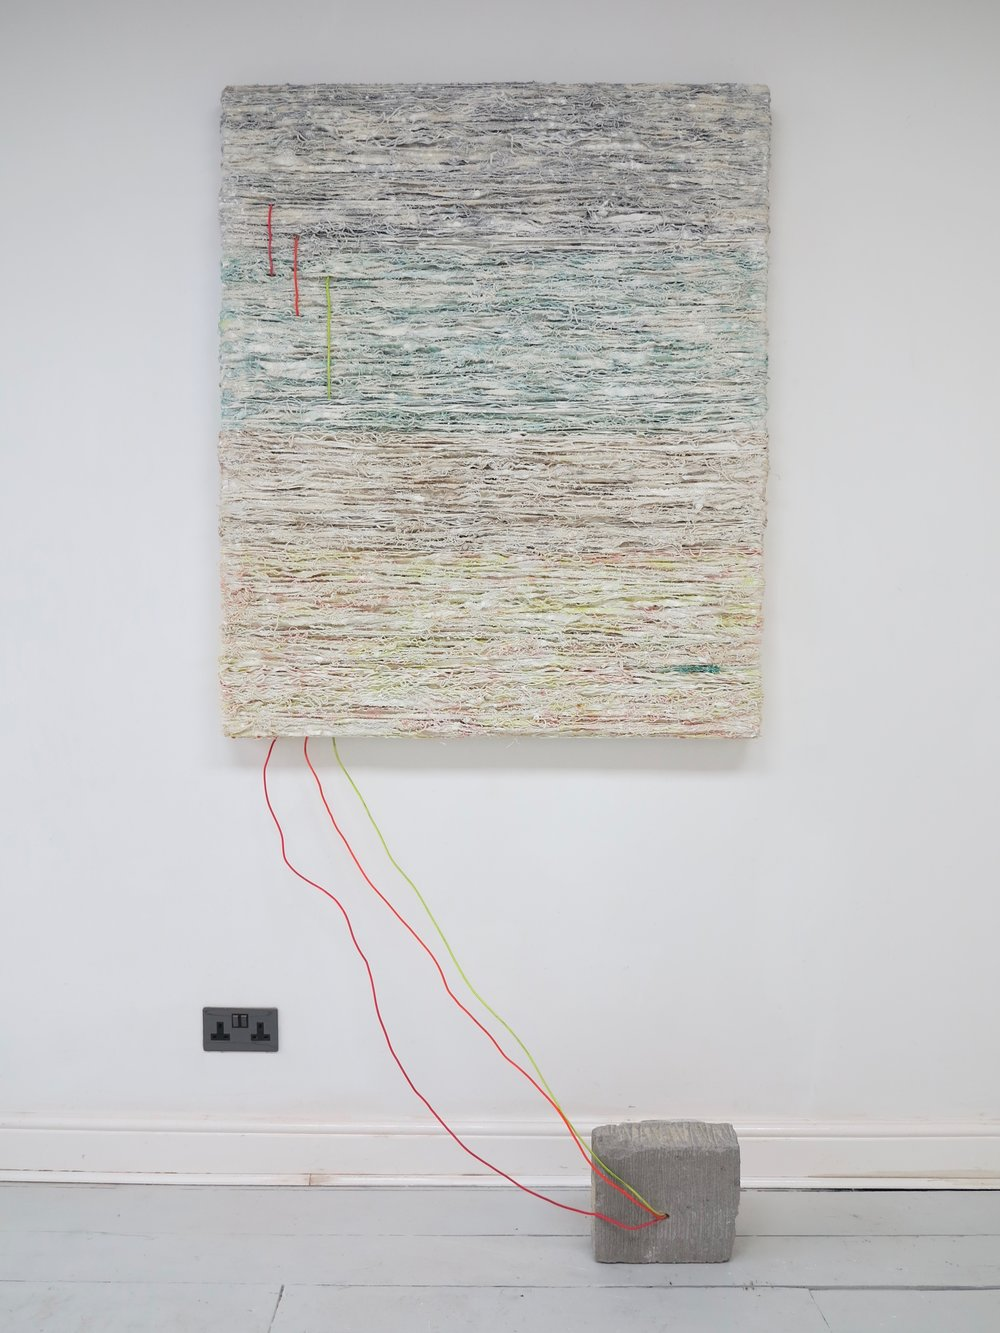 Wired.   Alkyd Resin, acrylic, raw pigment, varnish, PVA, plastic, electrical wire, concrete and cotton.  Dimensions variable.   Hack Morecambe  @ Gas Contemporary, Morecambe 2018.